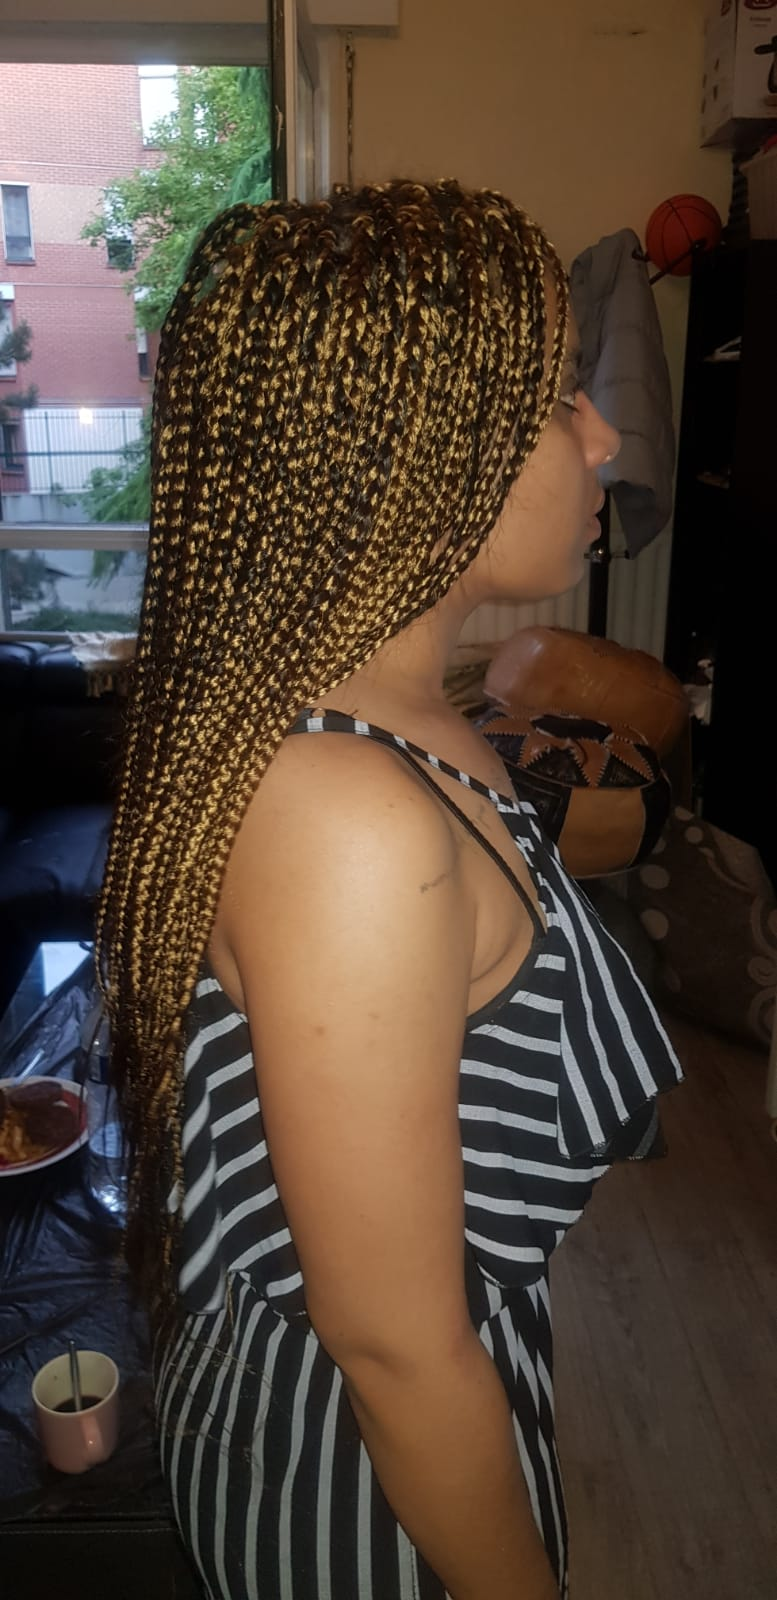 salon de coiffure afro tresse tresses box braids crochet braids vanilles tissages paris 75 77 78 91 92 93 94 95 AEWTDGQF